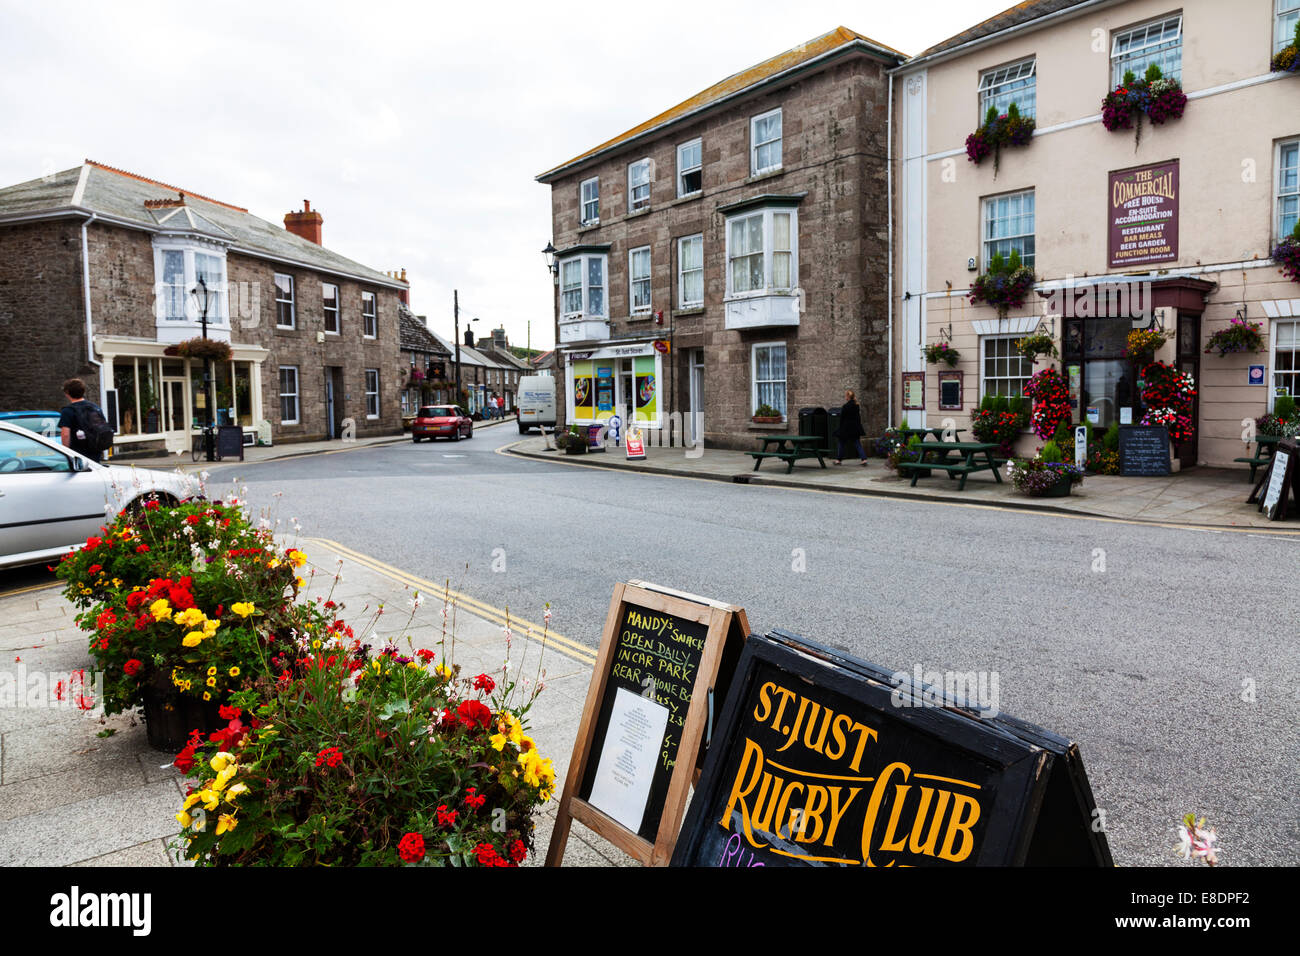 St Just Cornwall UK village centre shops pub pubs town center road Cornish typical - Stock Image